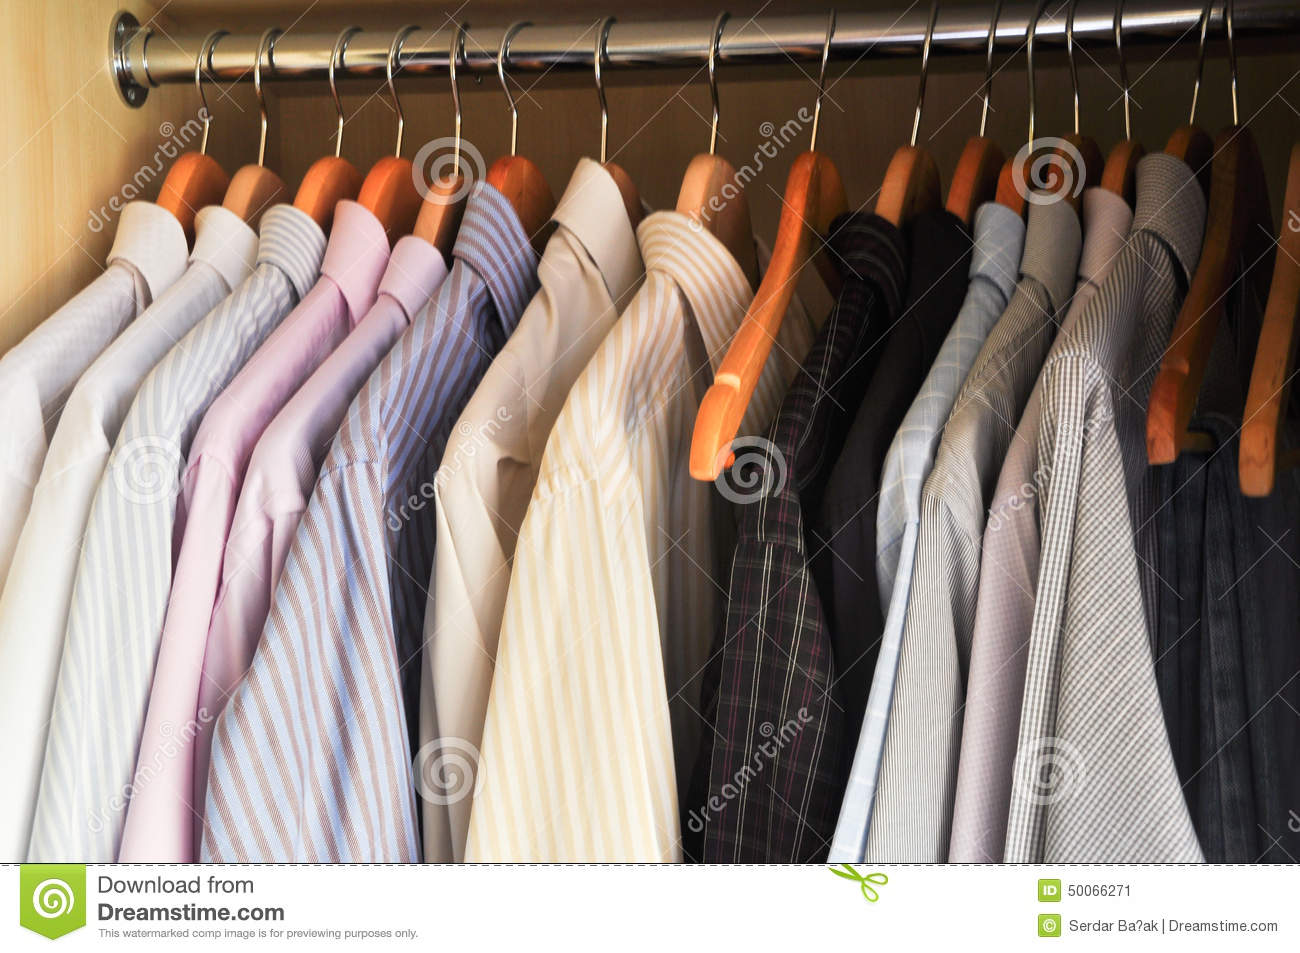 dress shirts on hangers royalty free stock image